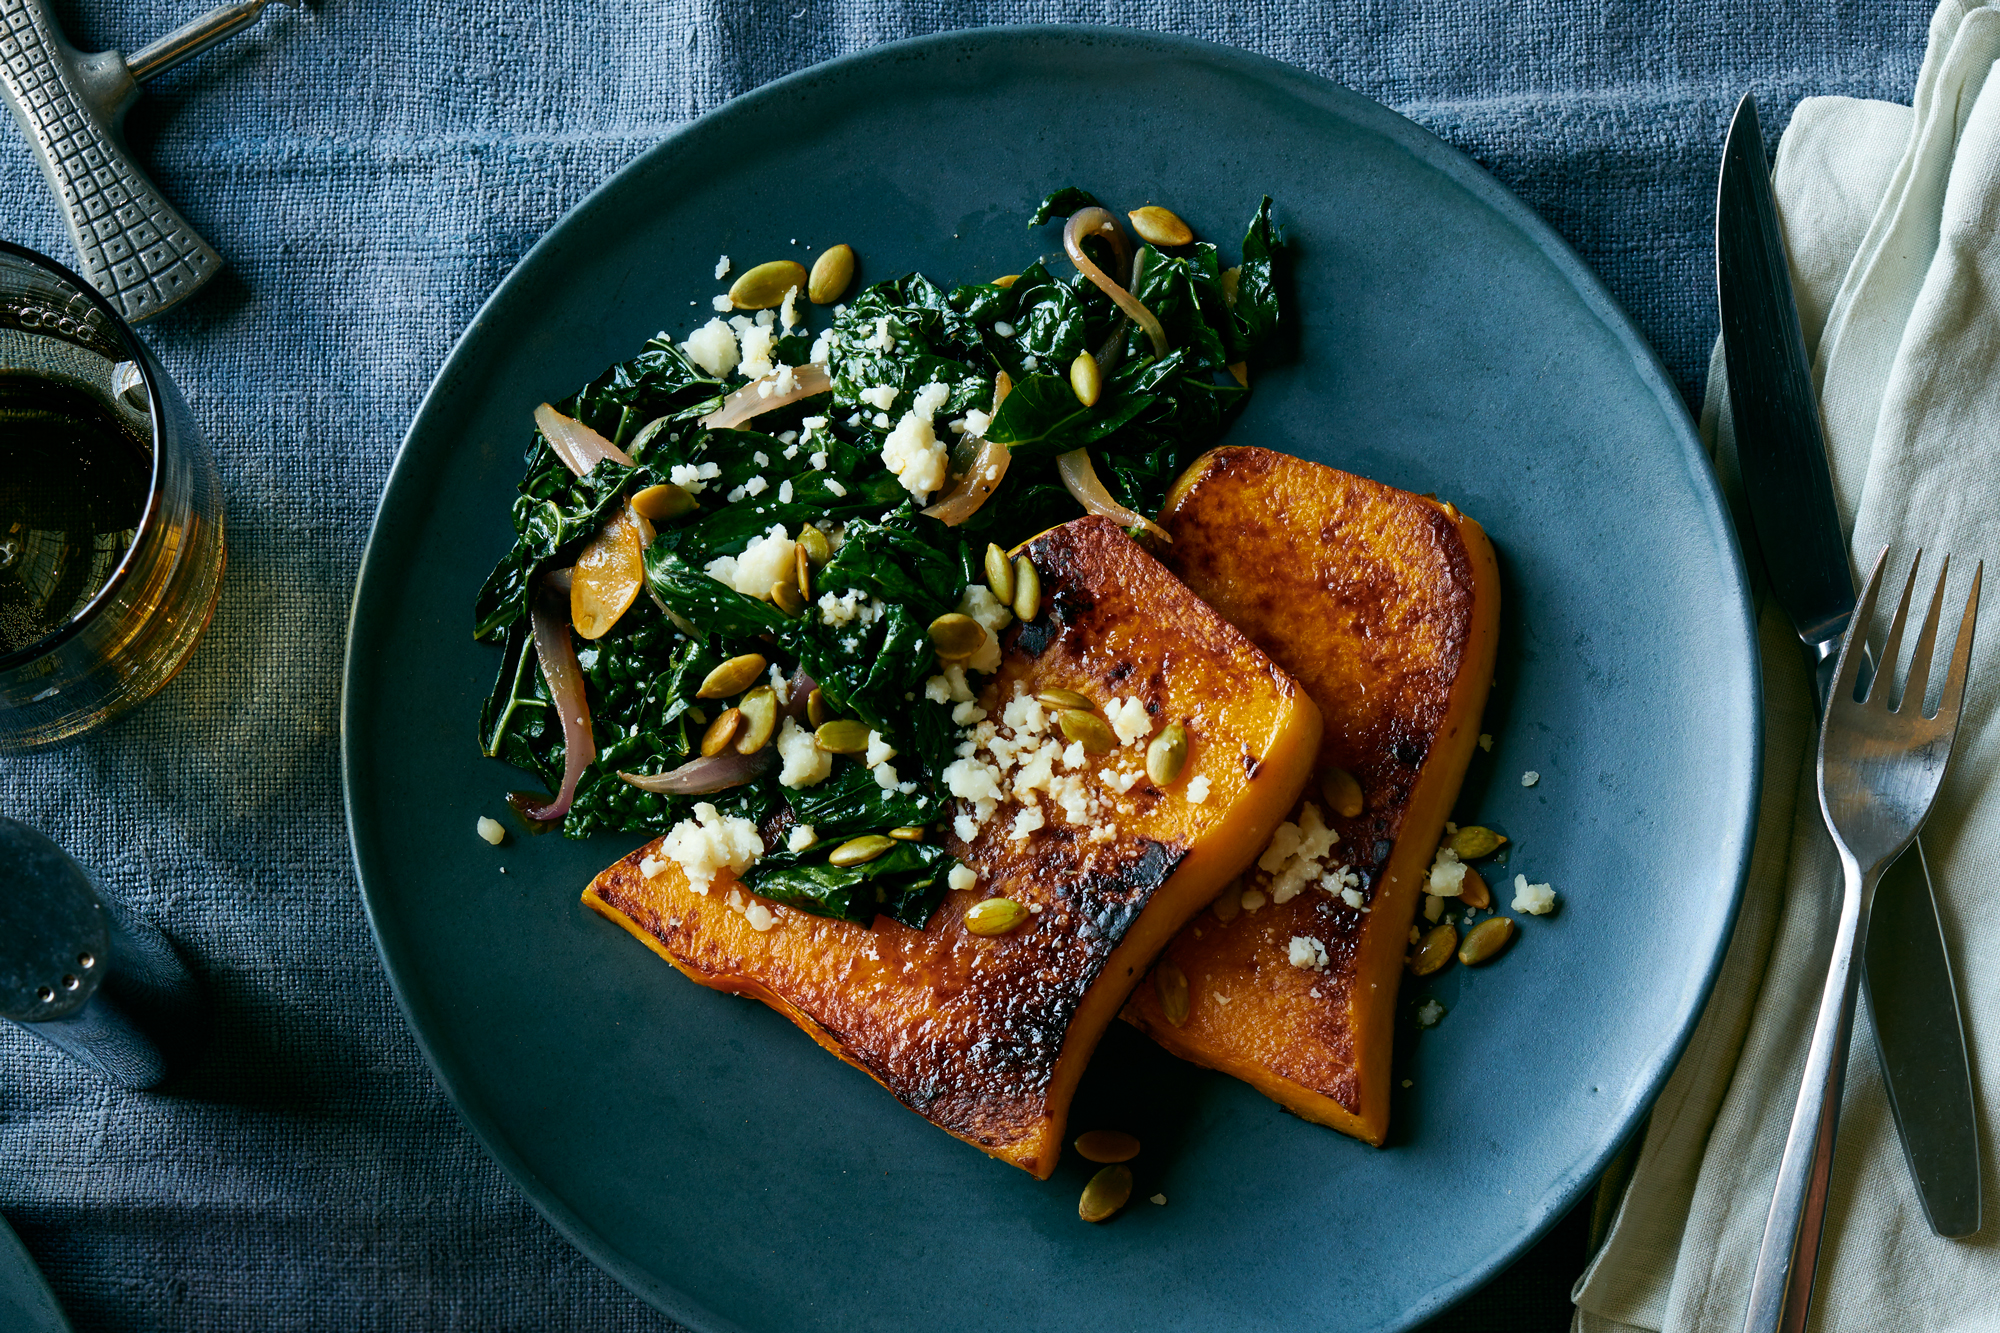 Roasted Butternut Squash with Chorizo Spiced Kale